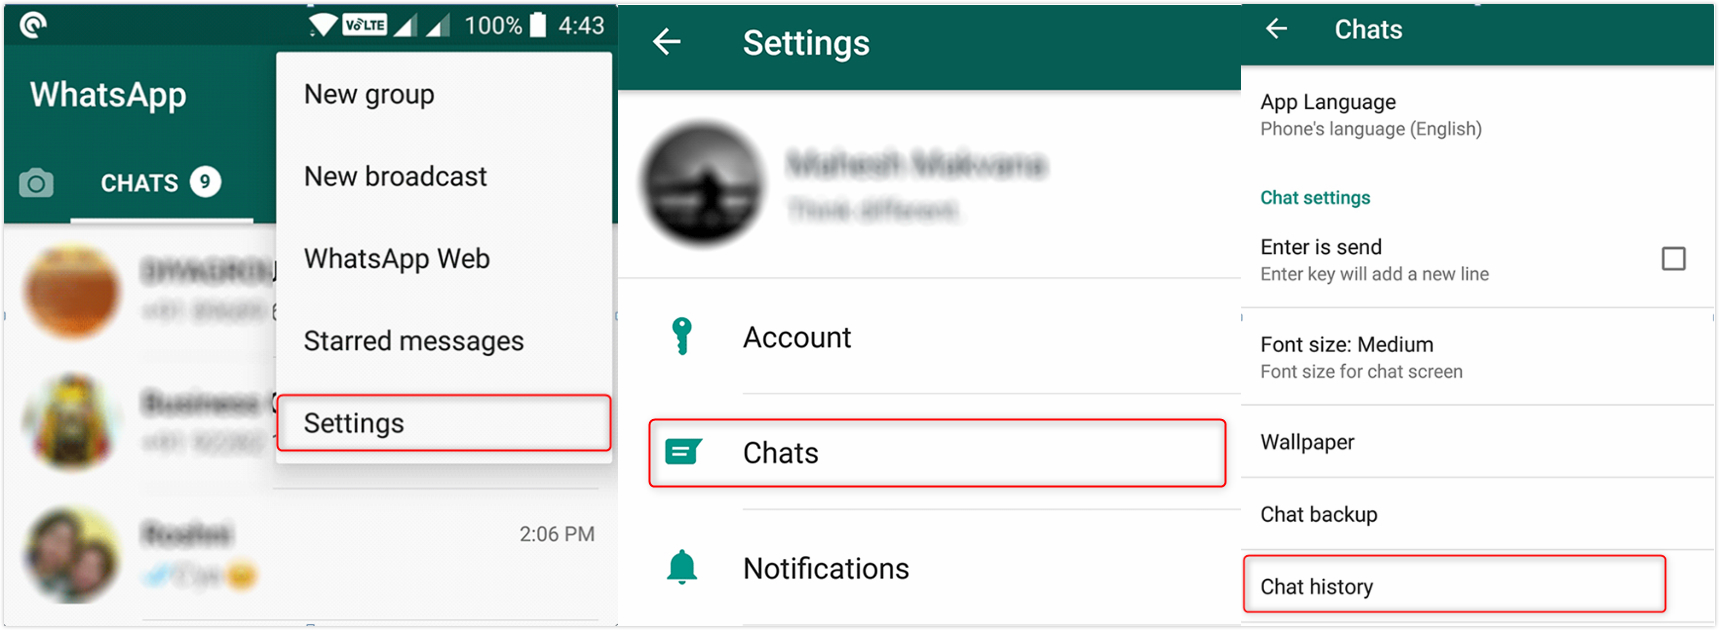 Transfer WhatsApp Messages from Android to iPhone using Email Chat - Step 1